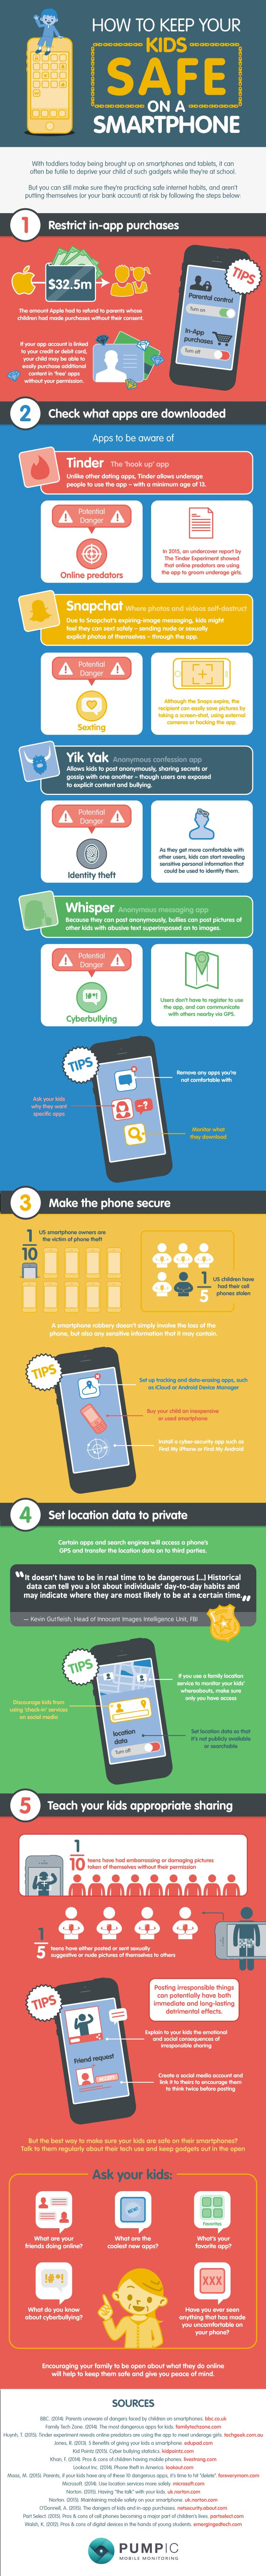 How to Keep Your Kid Safe On A Smartphone